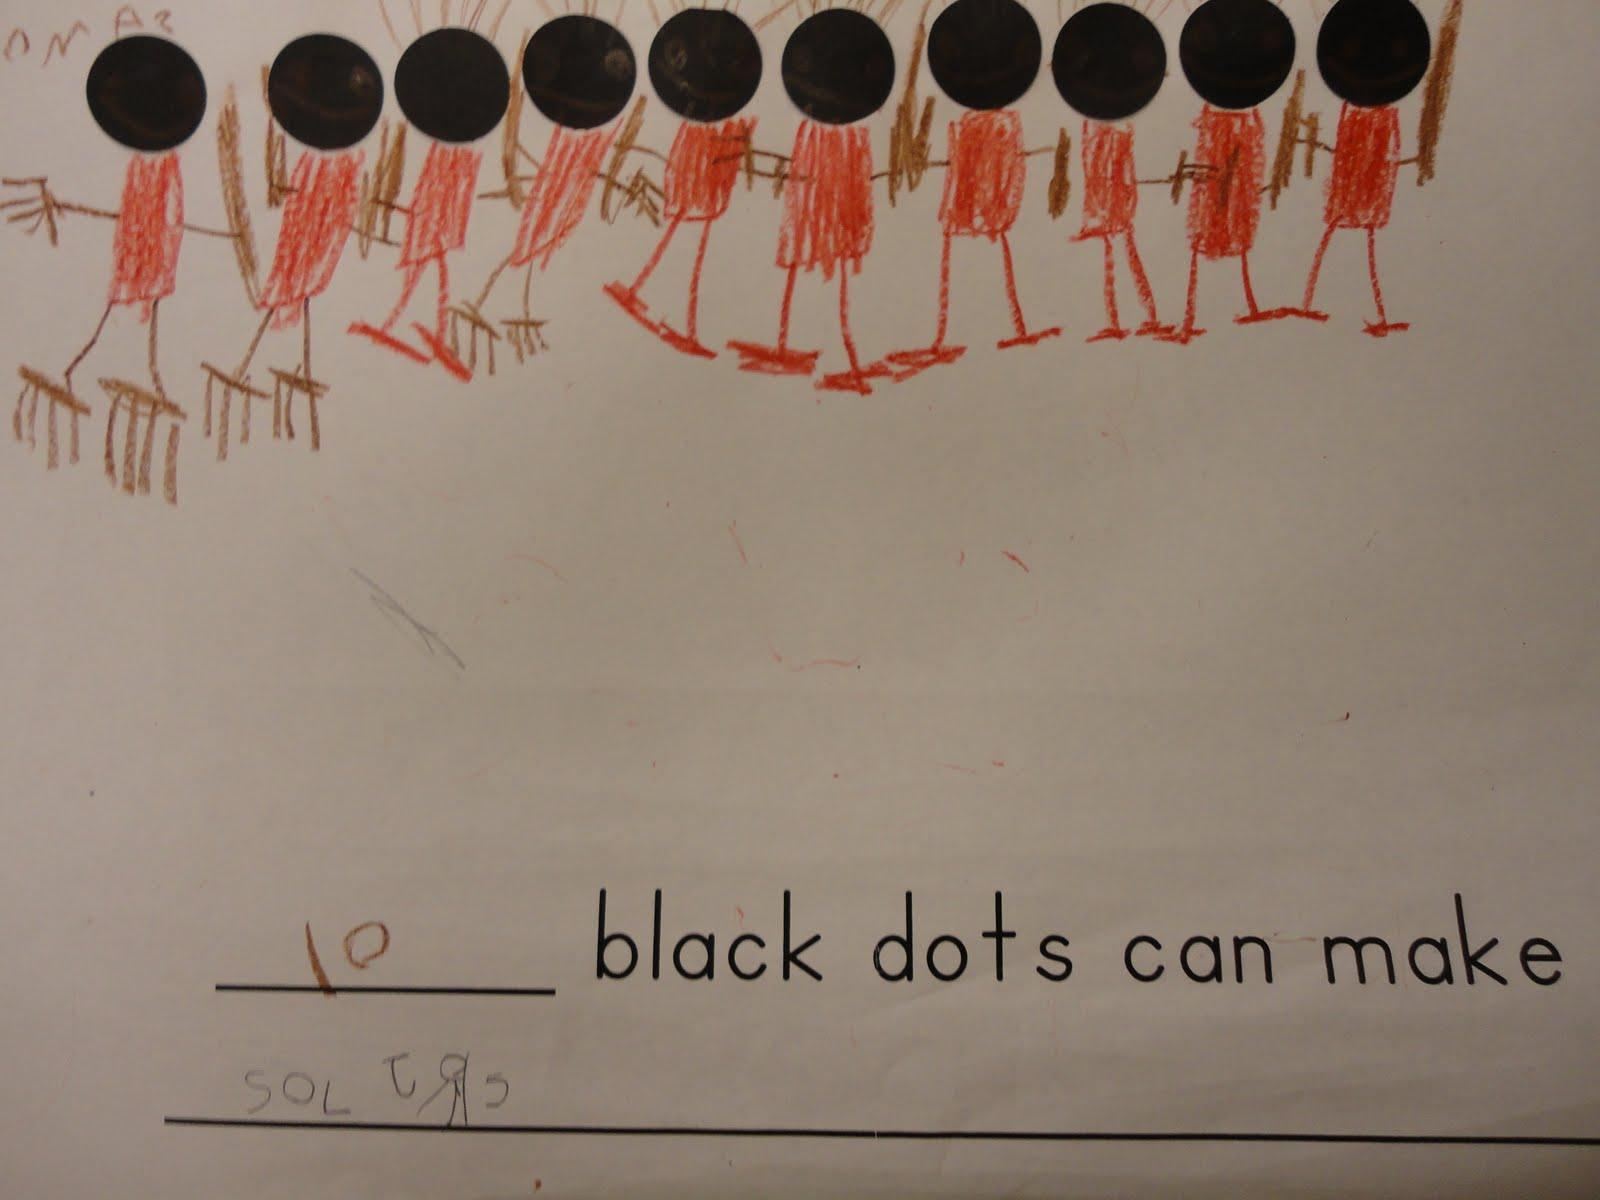 A Place Called Kindergarten 10 Black Dots